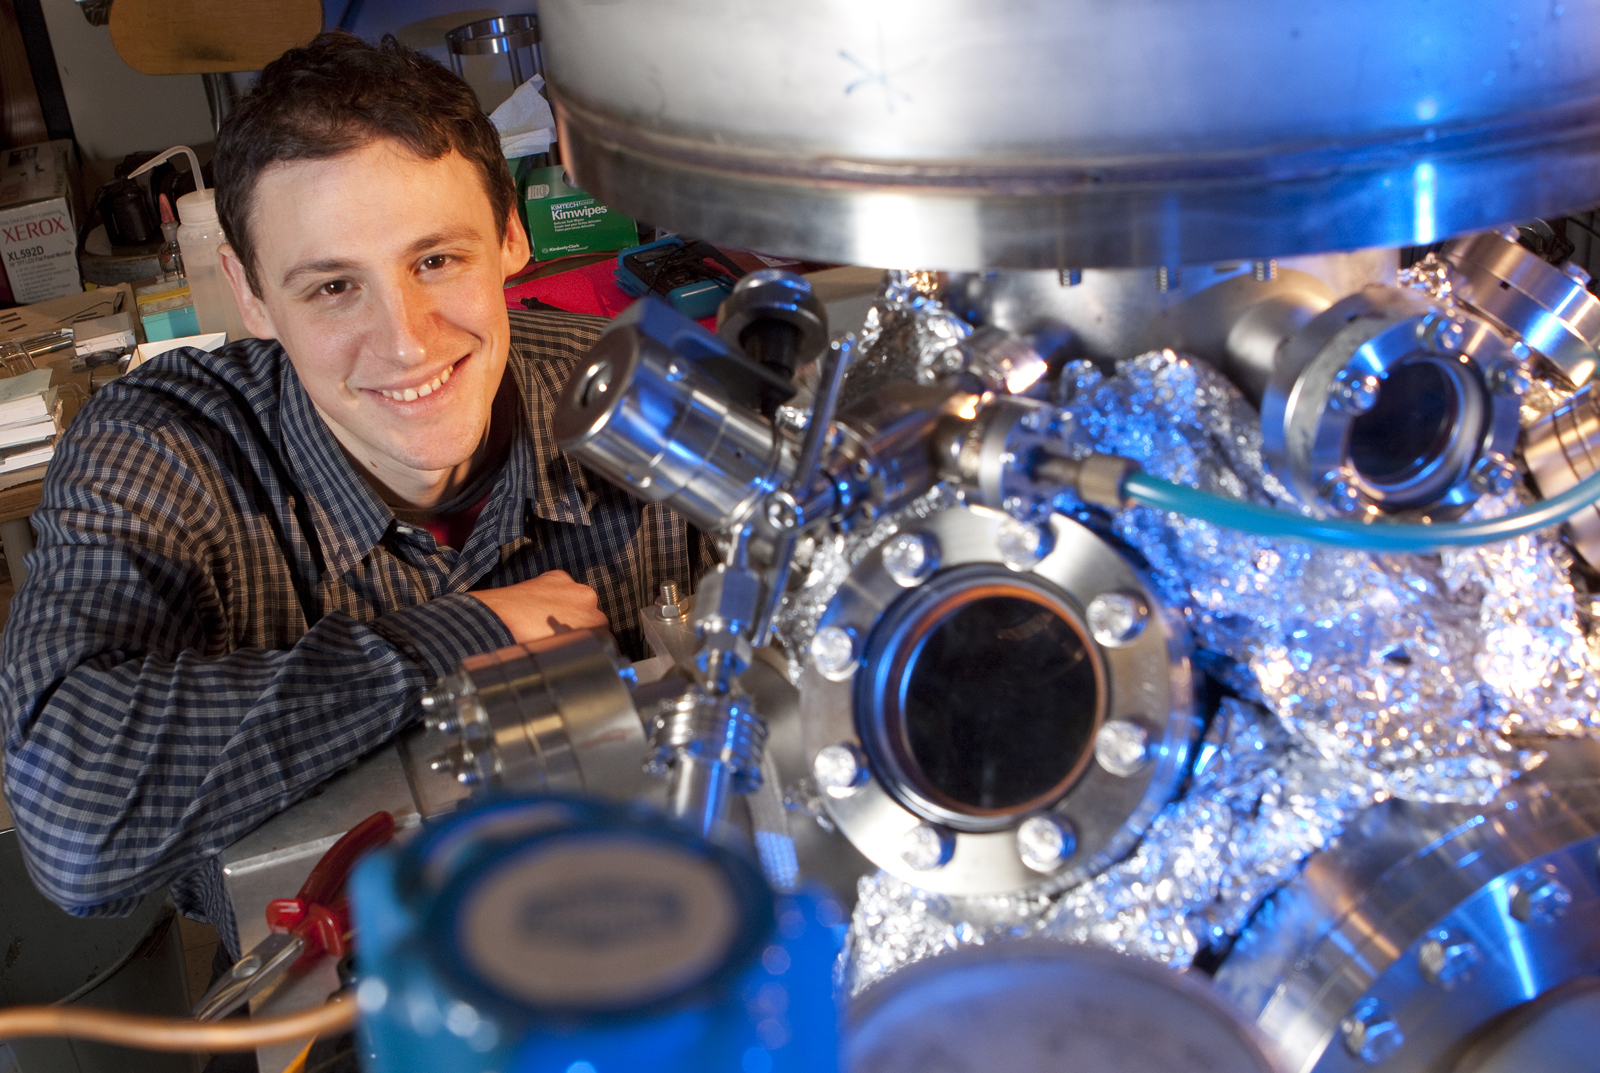 A team lead by Martin Centurion has developed a method to capture 3-D images of molecules undergoing structural changes. The method includes using a vacuum chamber similar to the one pictured.